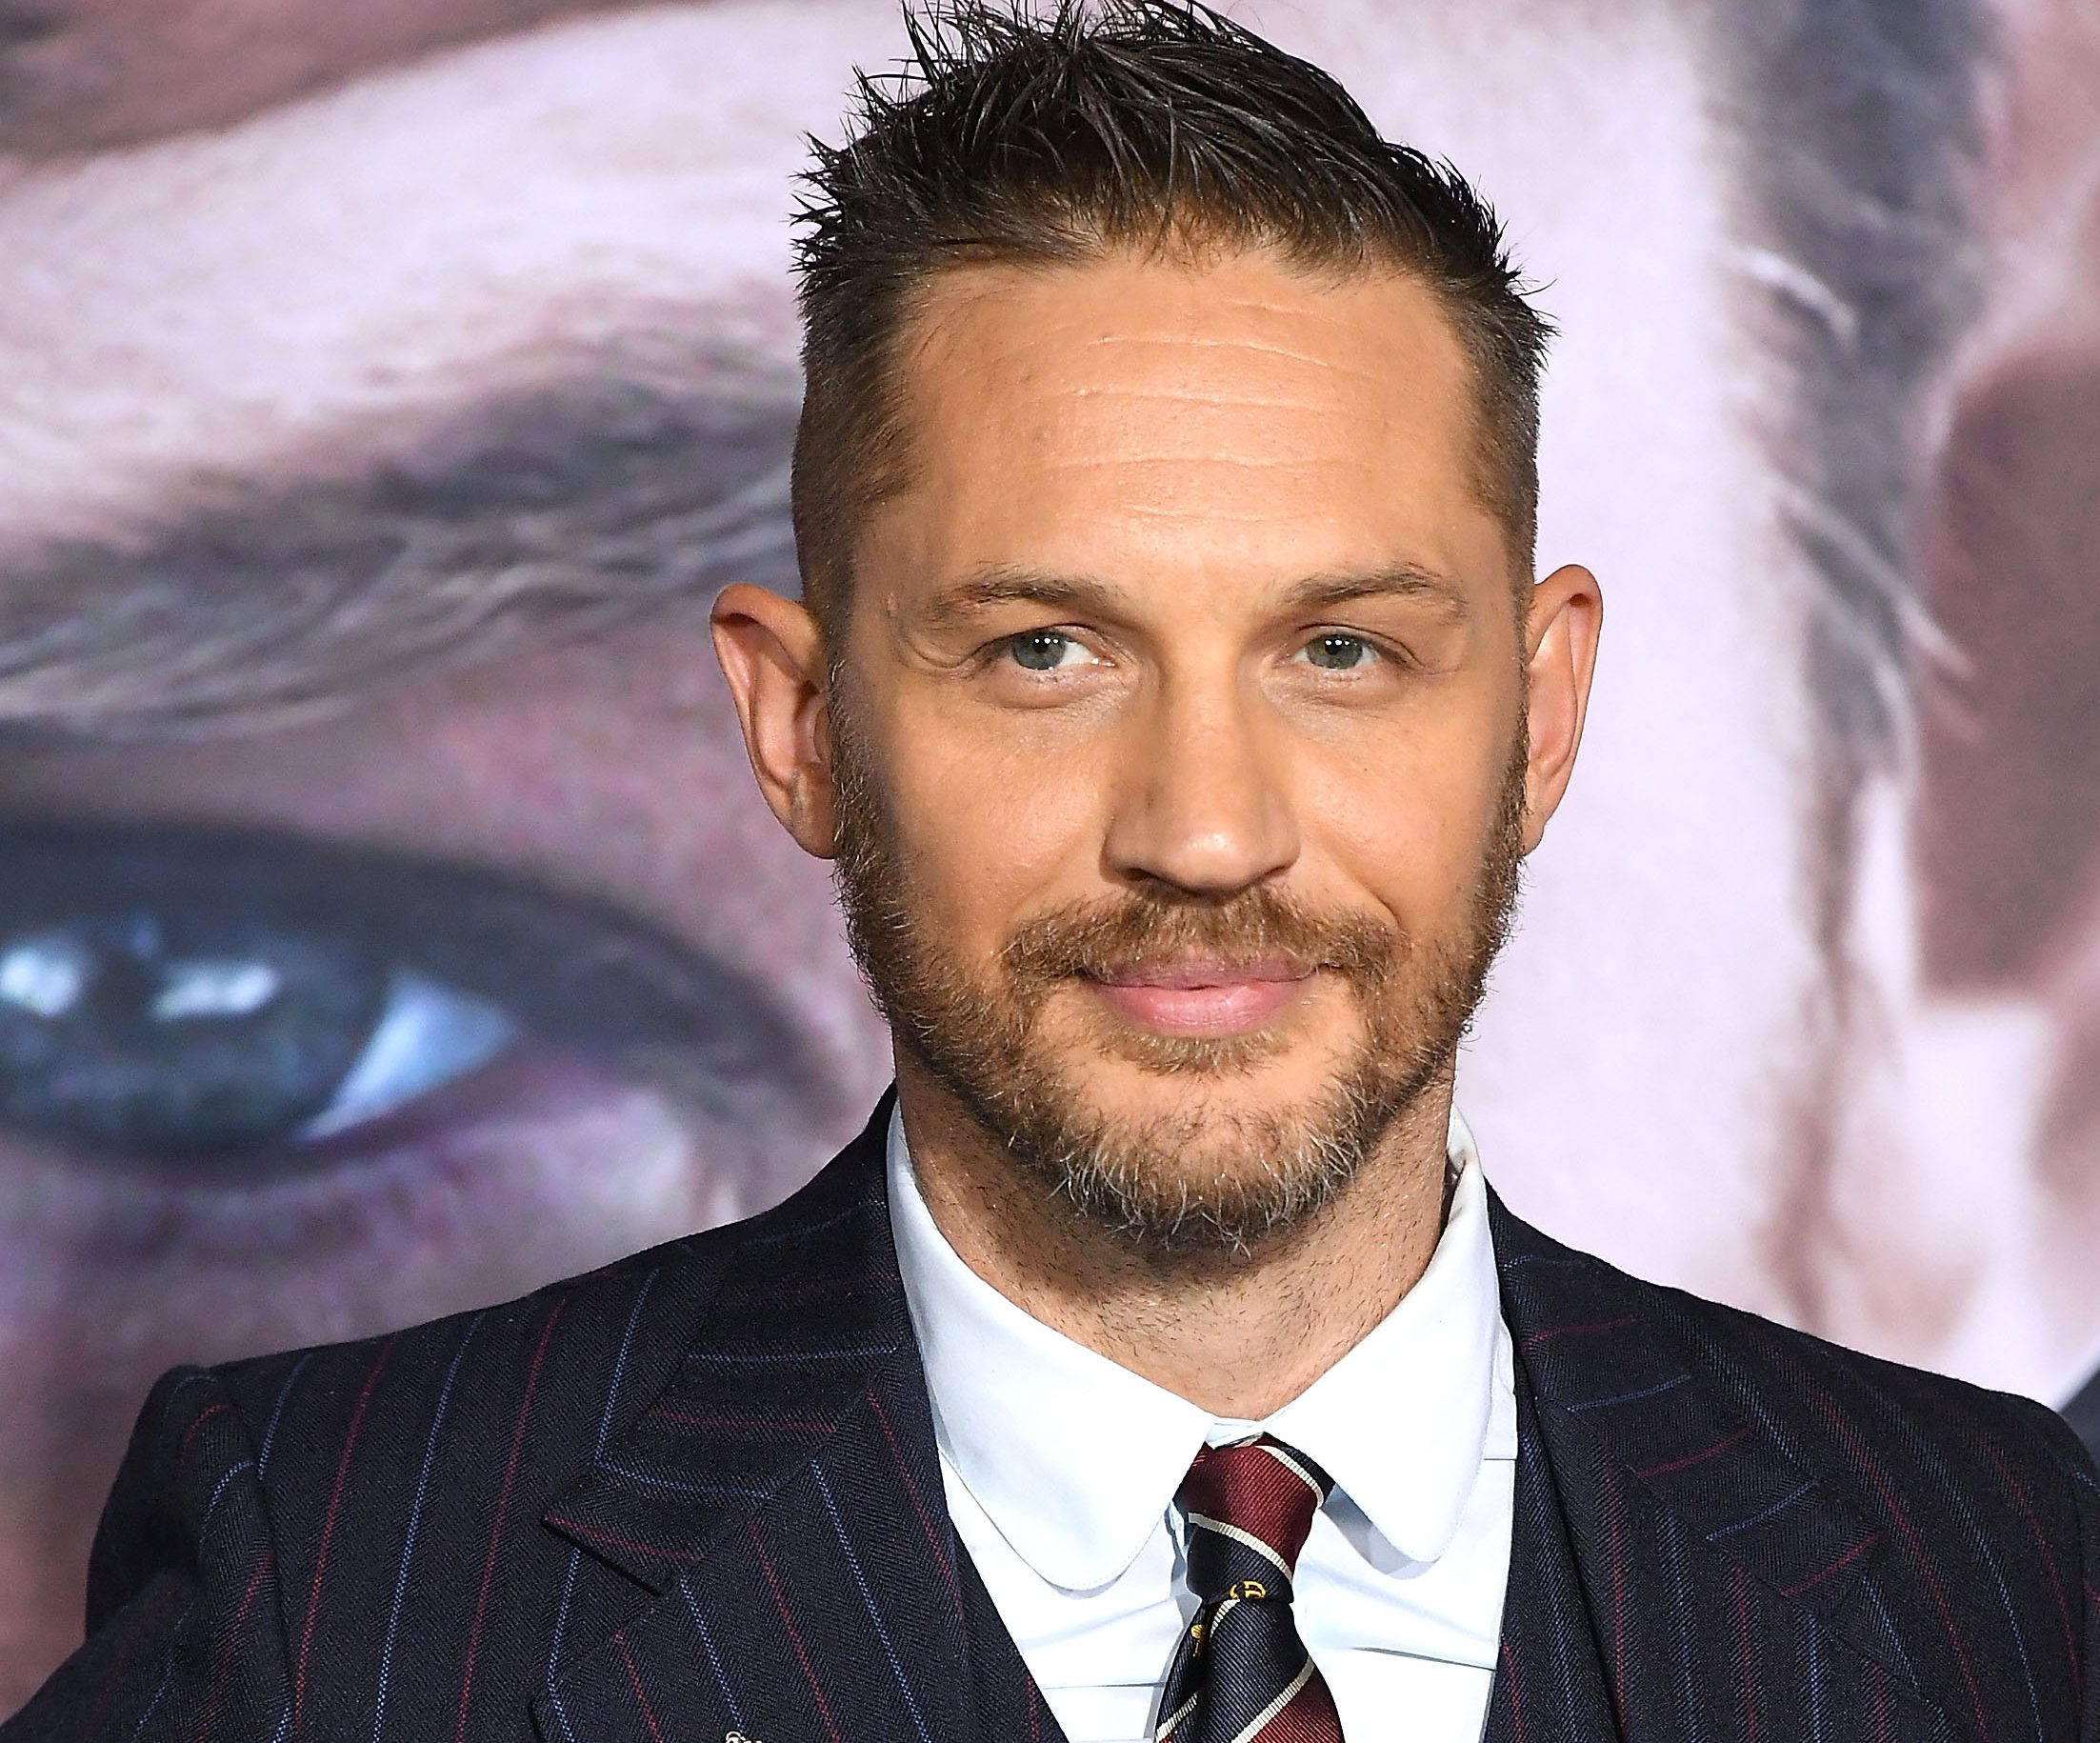 Tom Hardy reveals playing Venom gave him more understanding about his alcohol addiction